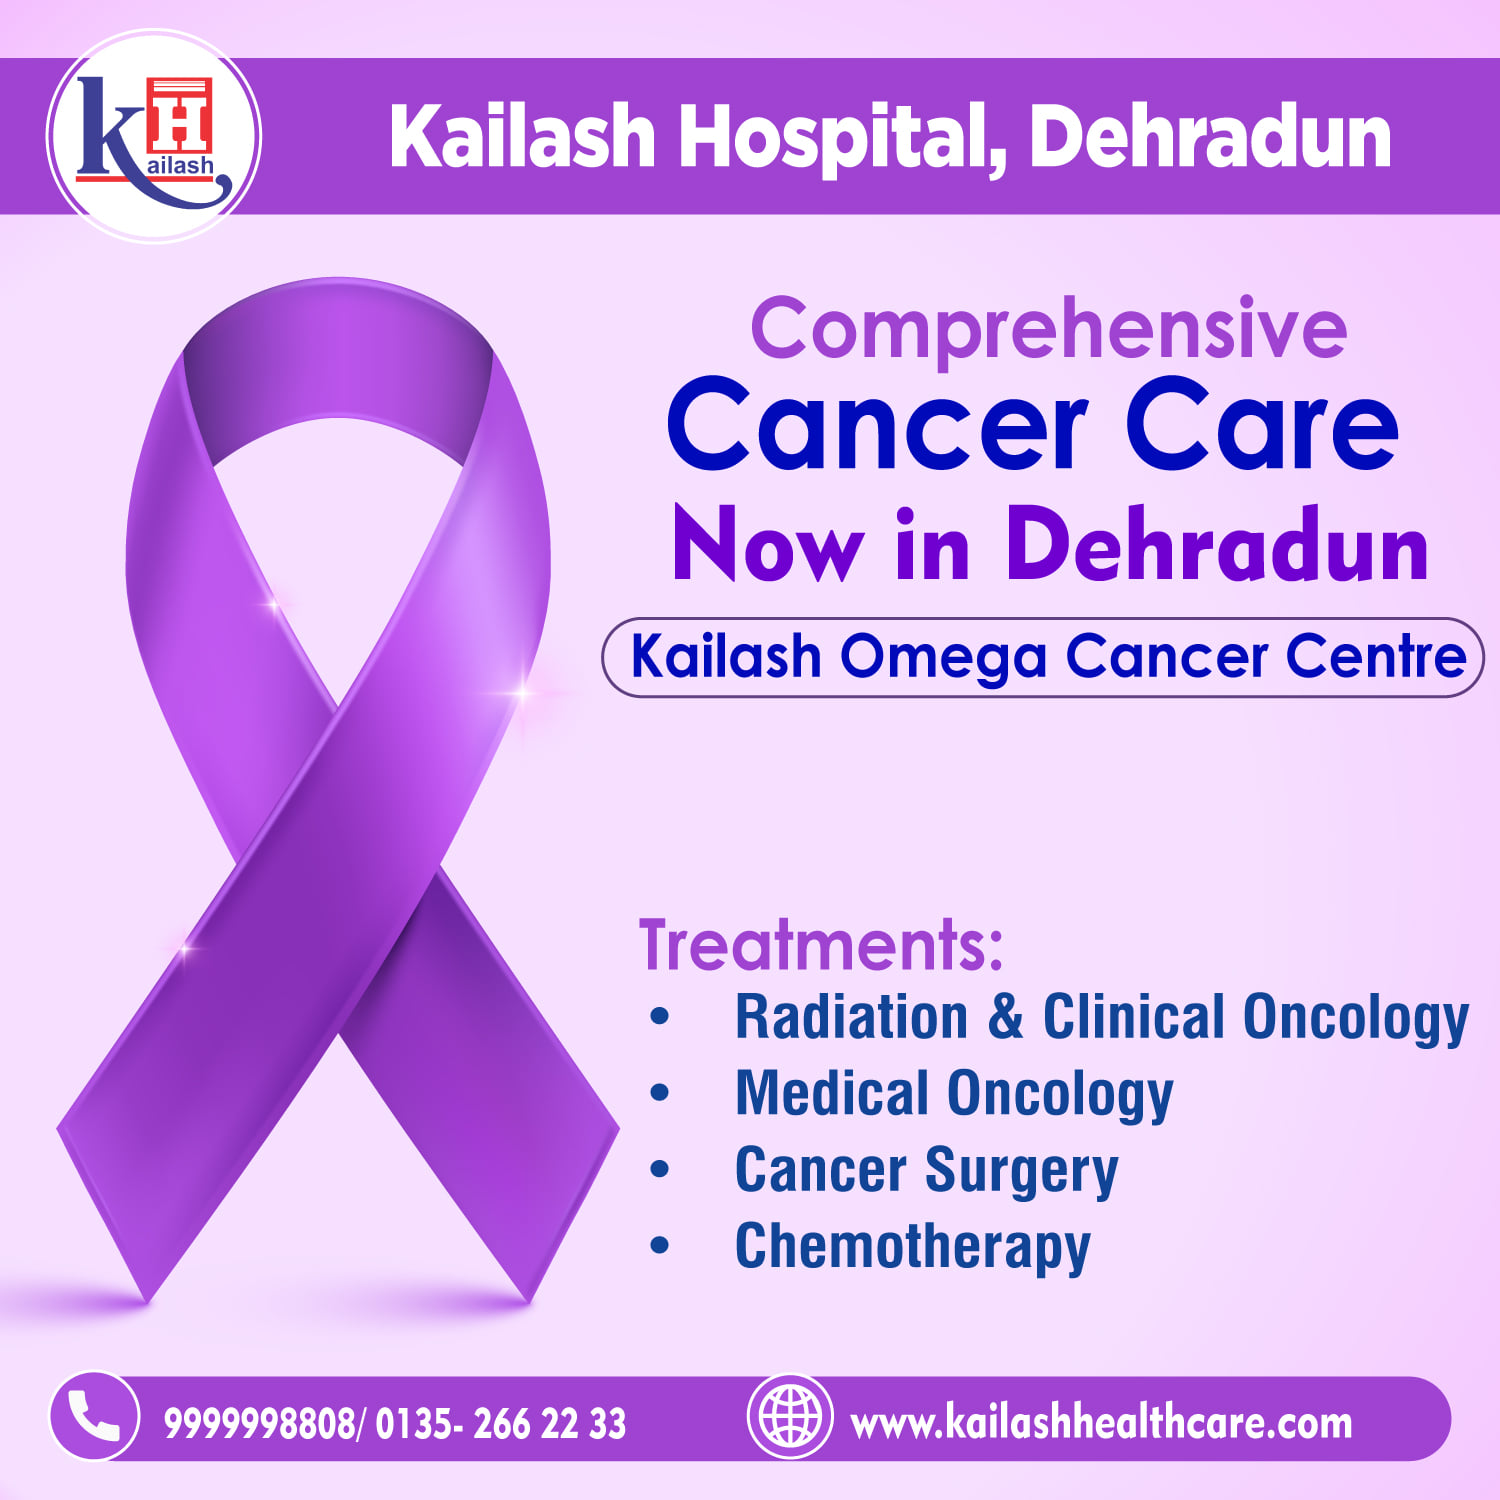 """Introducing """"Kailash Omega Cancer Centre"""" at Kailash Hospital Dehradun for Comprehensive Cancer Diagnosis & Treatment under one roof."""